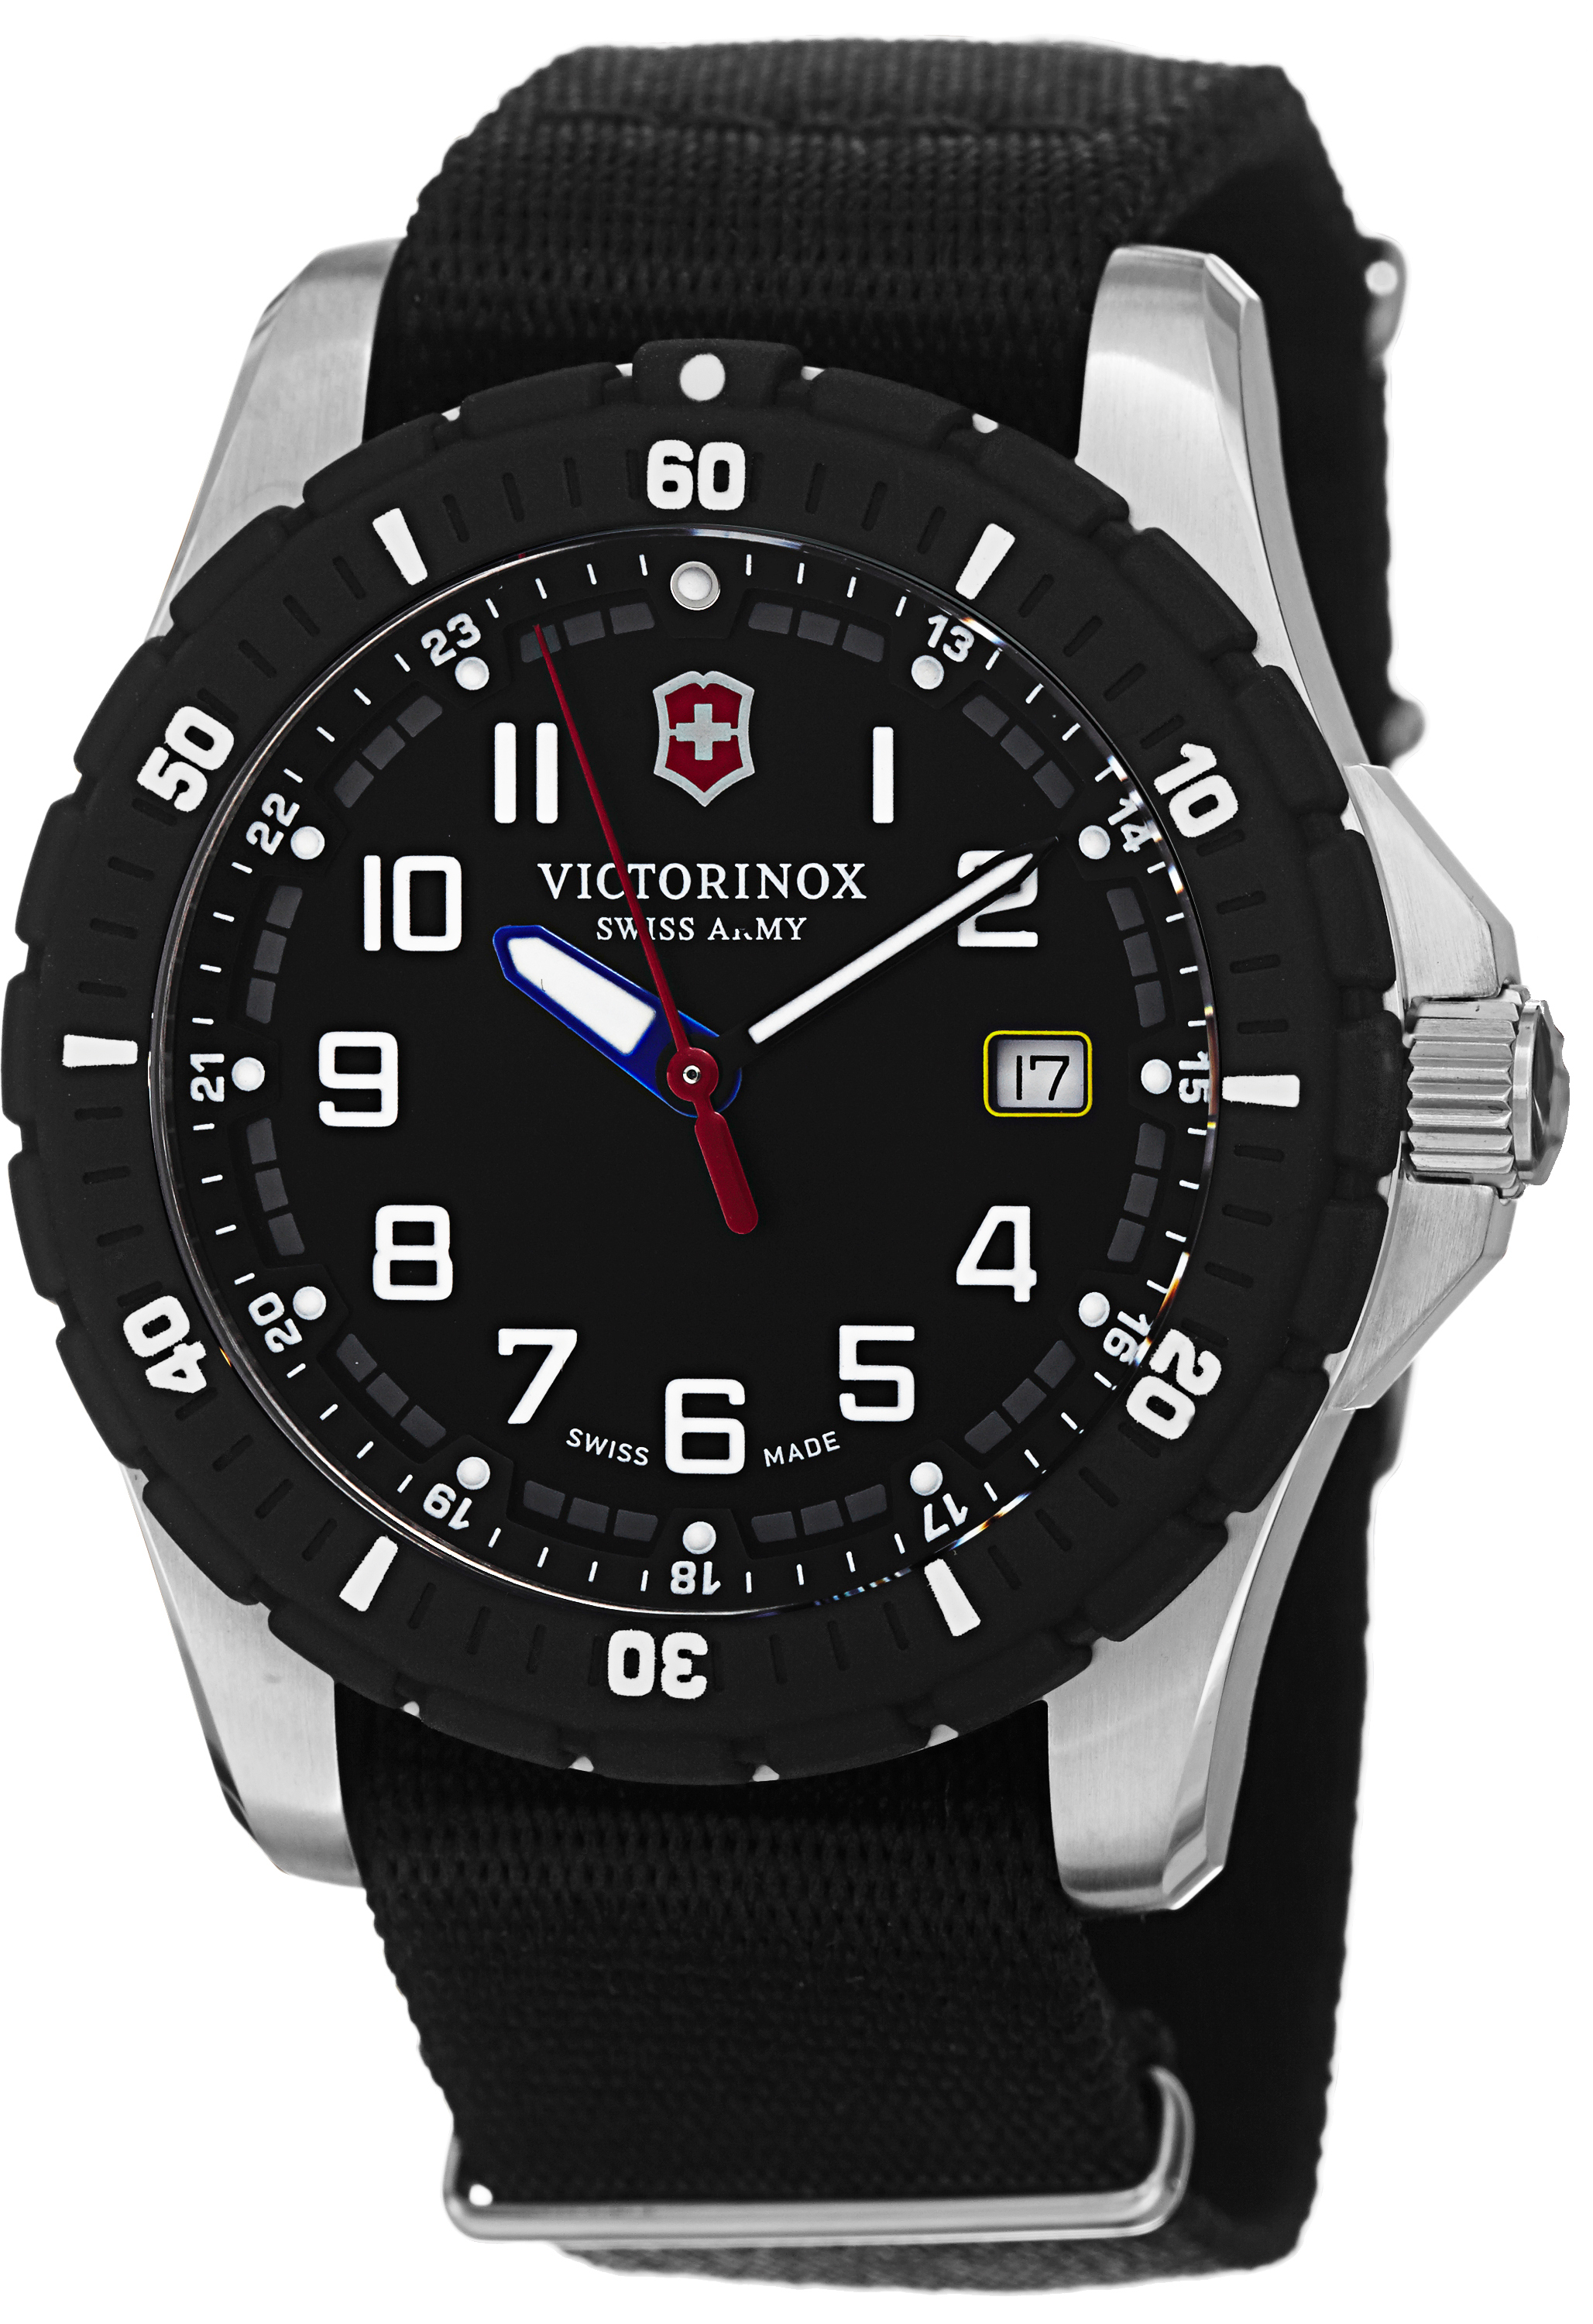 carbon watches black swiss inox watch army products victorinox watchtimesa